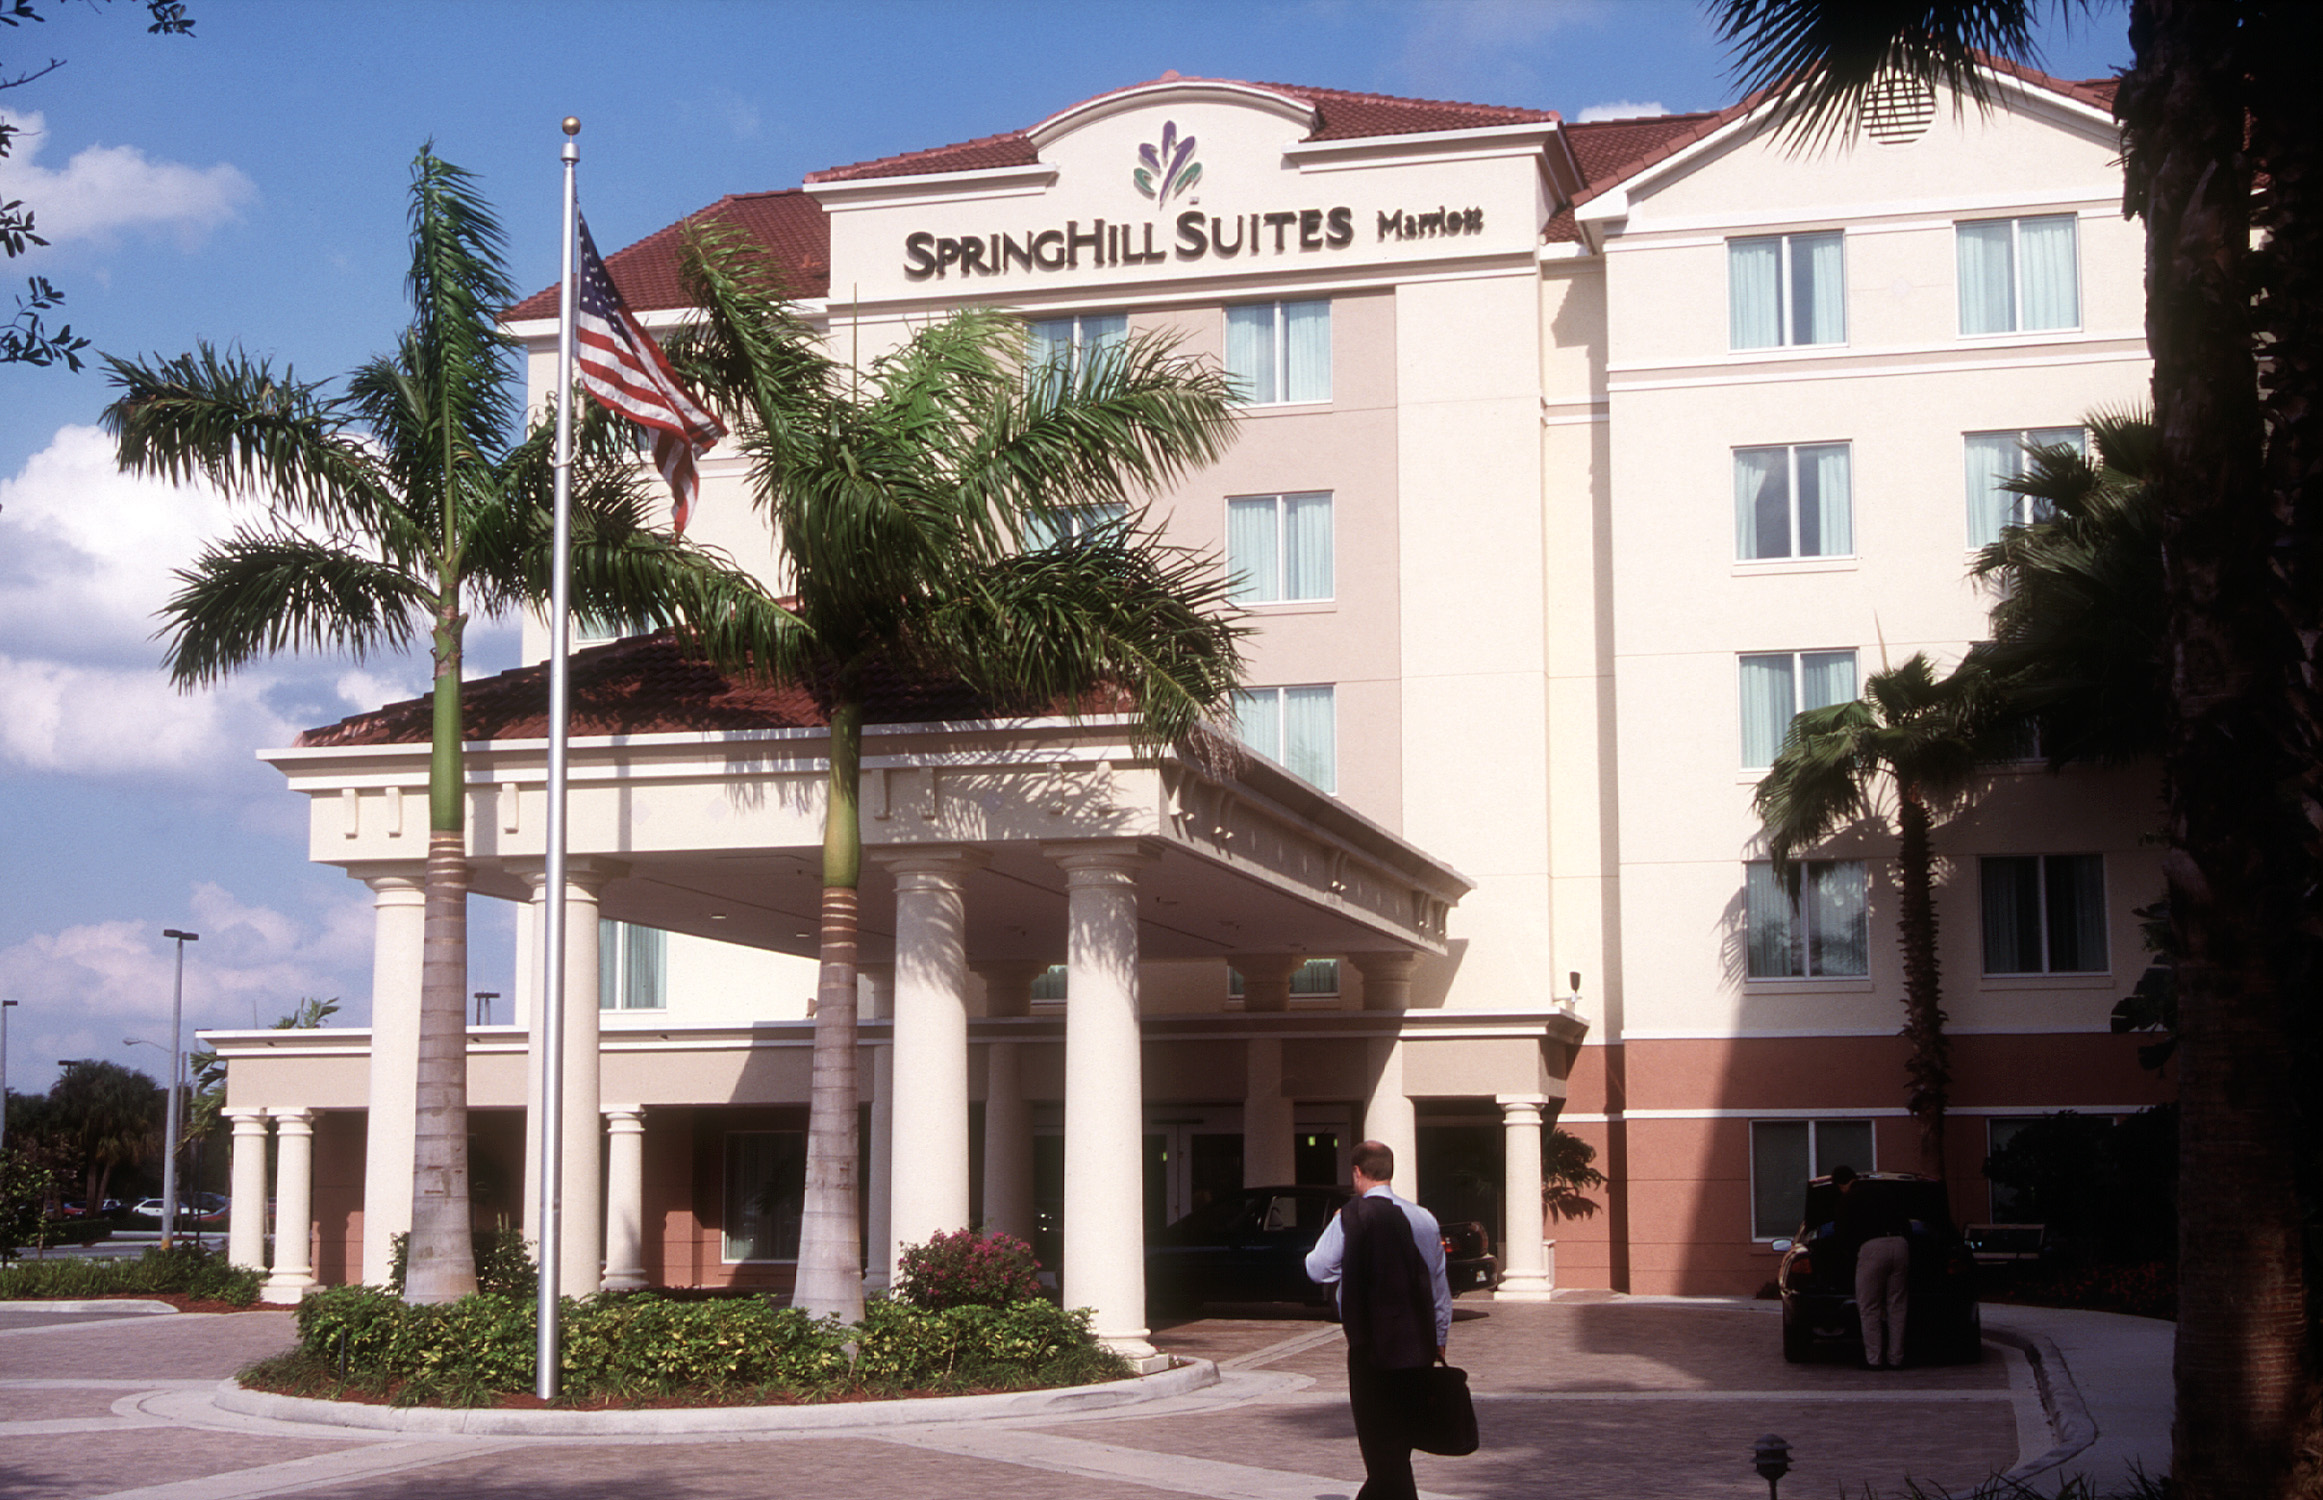 An early SpringHill Suites.